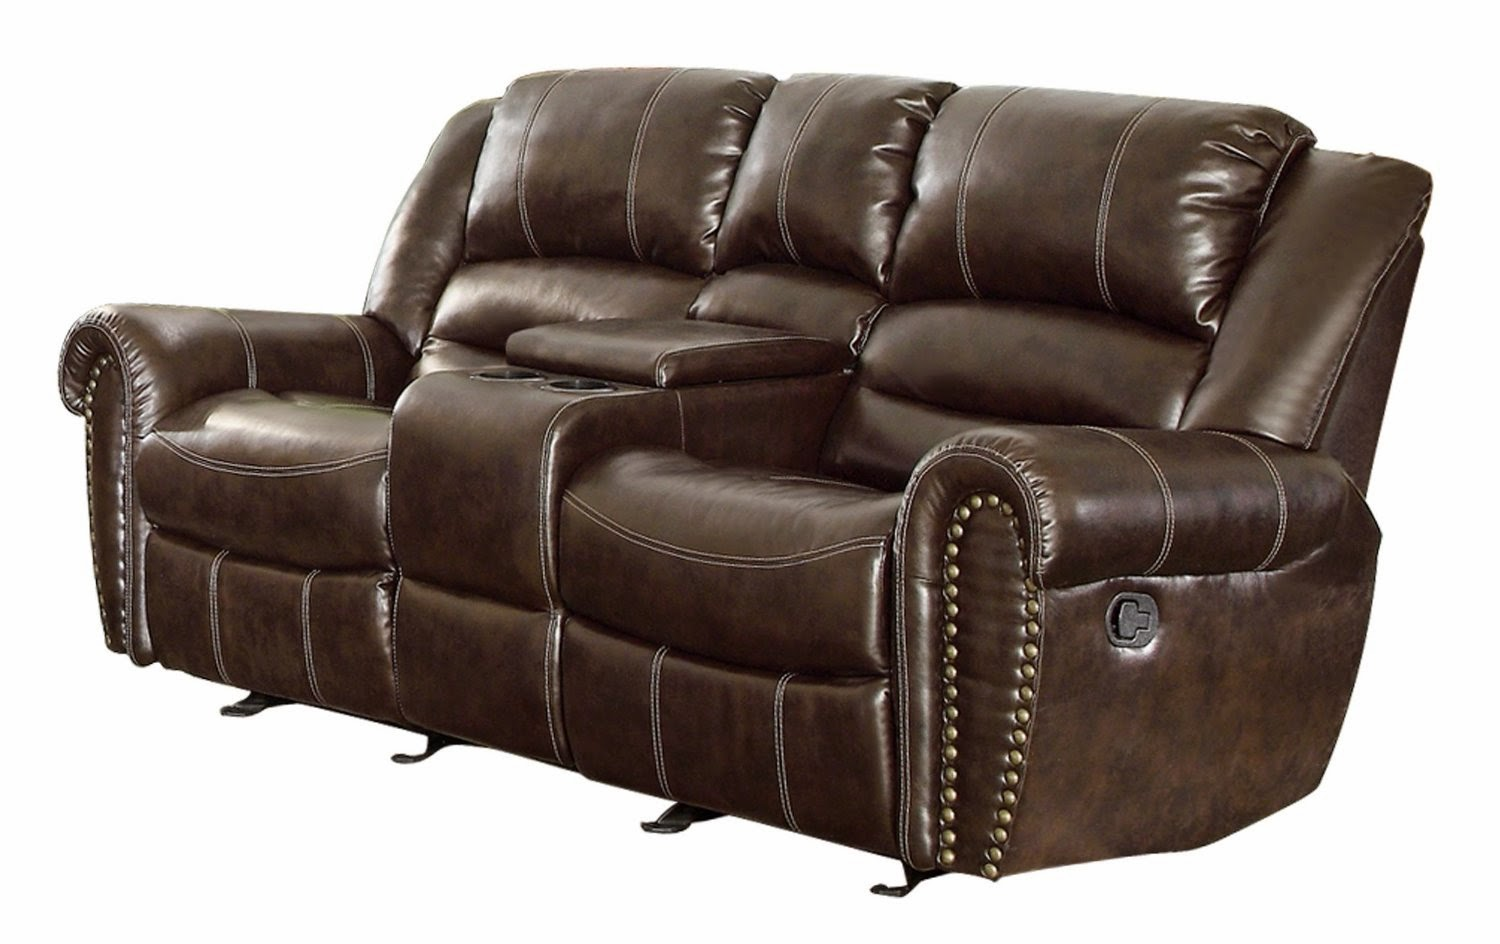 reclining sofa leather molteni turner preis cheap sofas sale 2 seater recliner